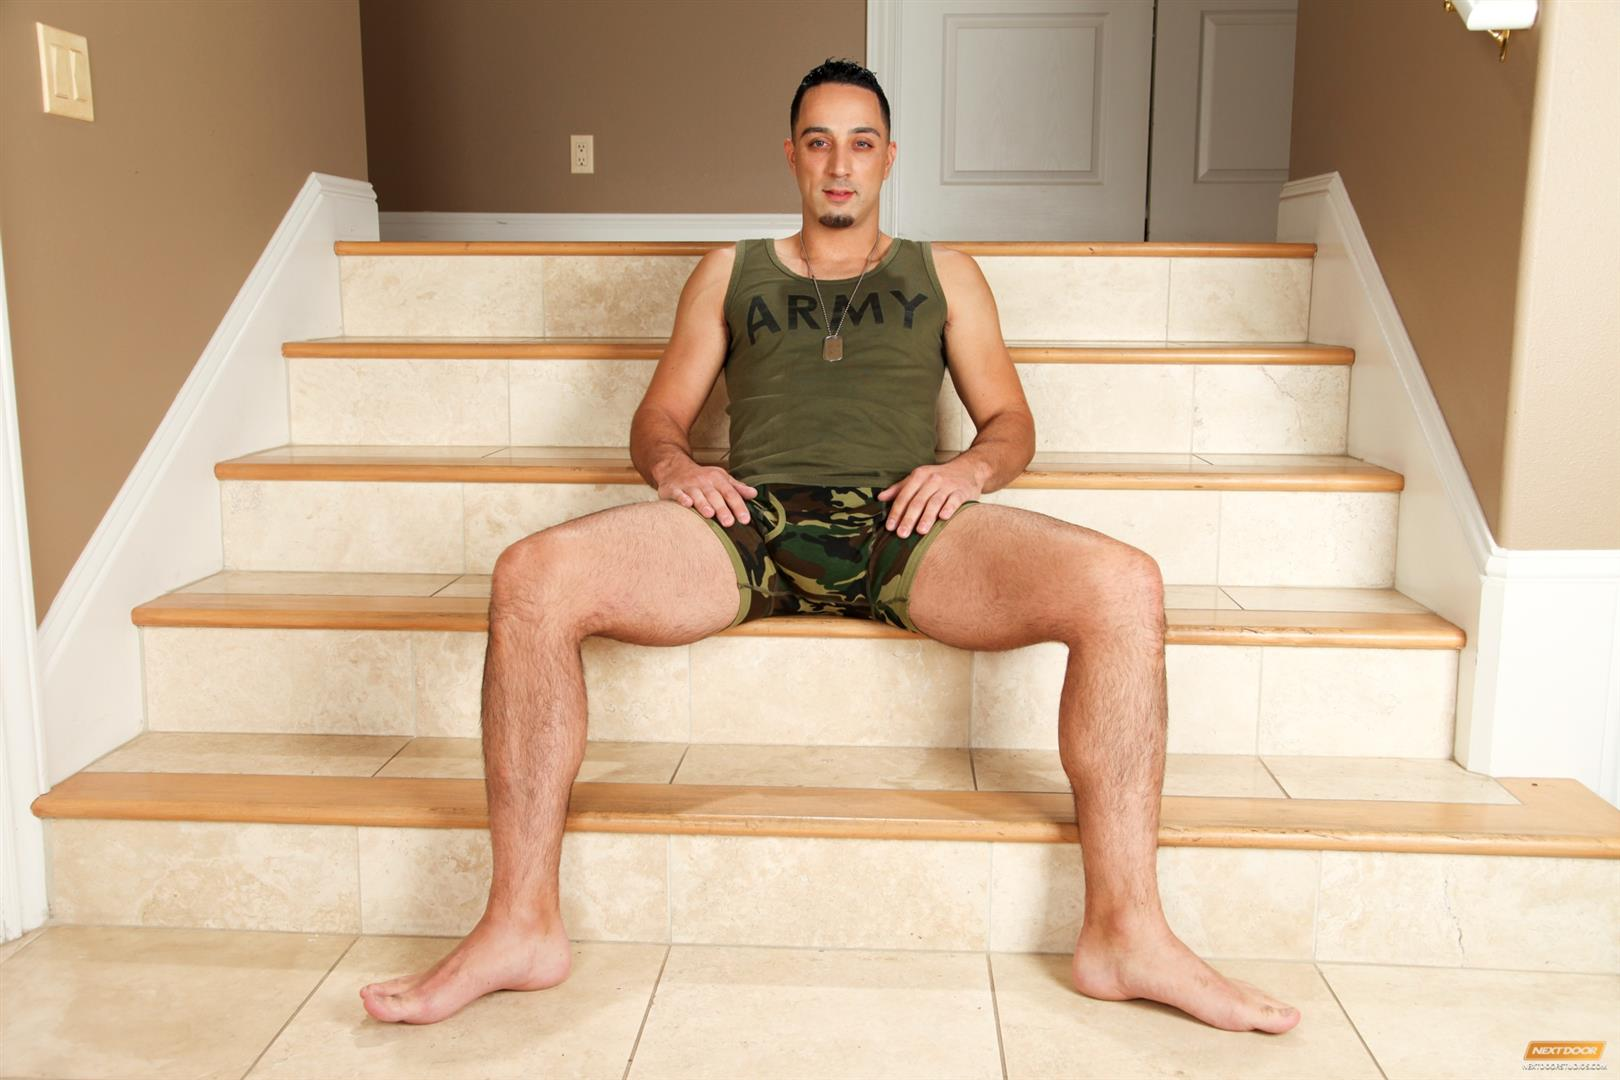 Next Door Buddy Andrew Fitch and Sean Blue Military Army Guy With A Big Cock Fucking Amateur Gay Porn 01 Hung Army Guy Returning From Duty Fucking His Buddy Hard